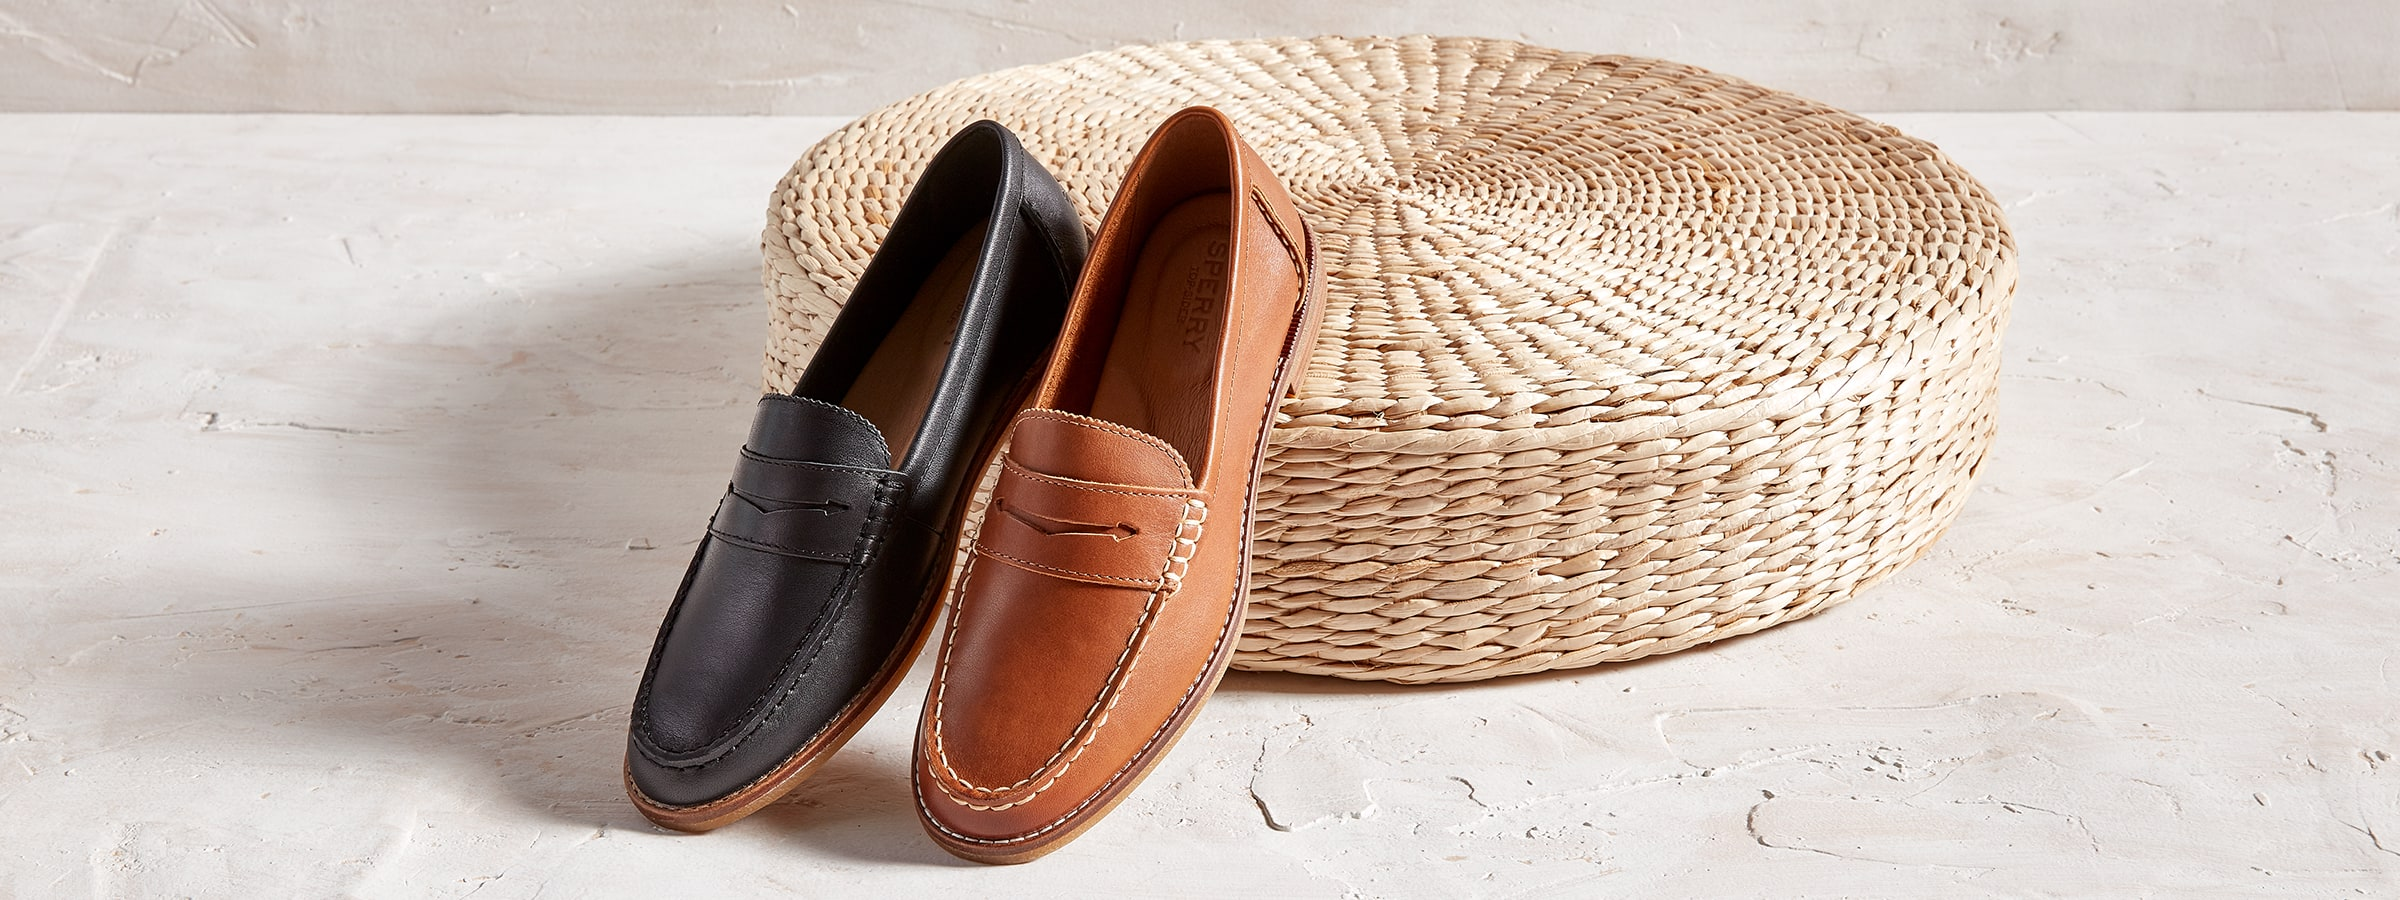 2 Sperry Loafers propped up on a basket.